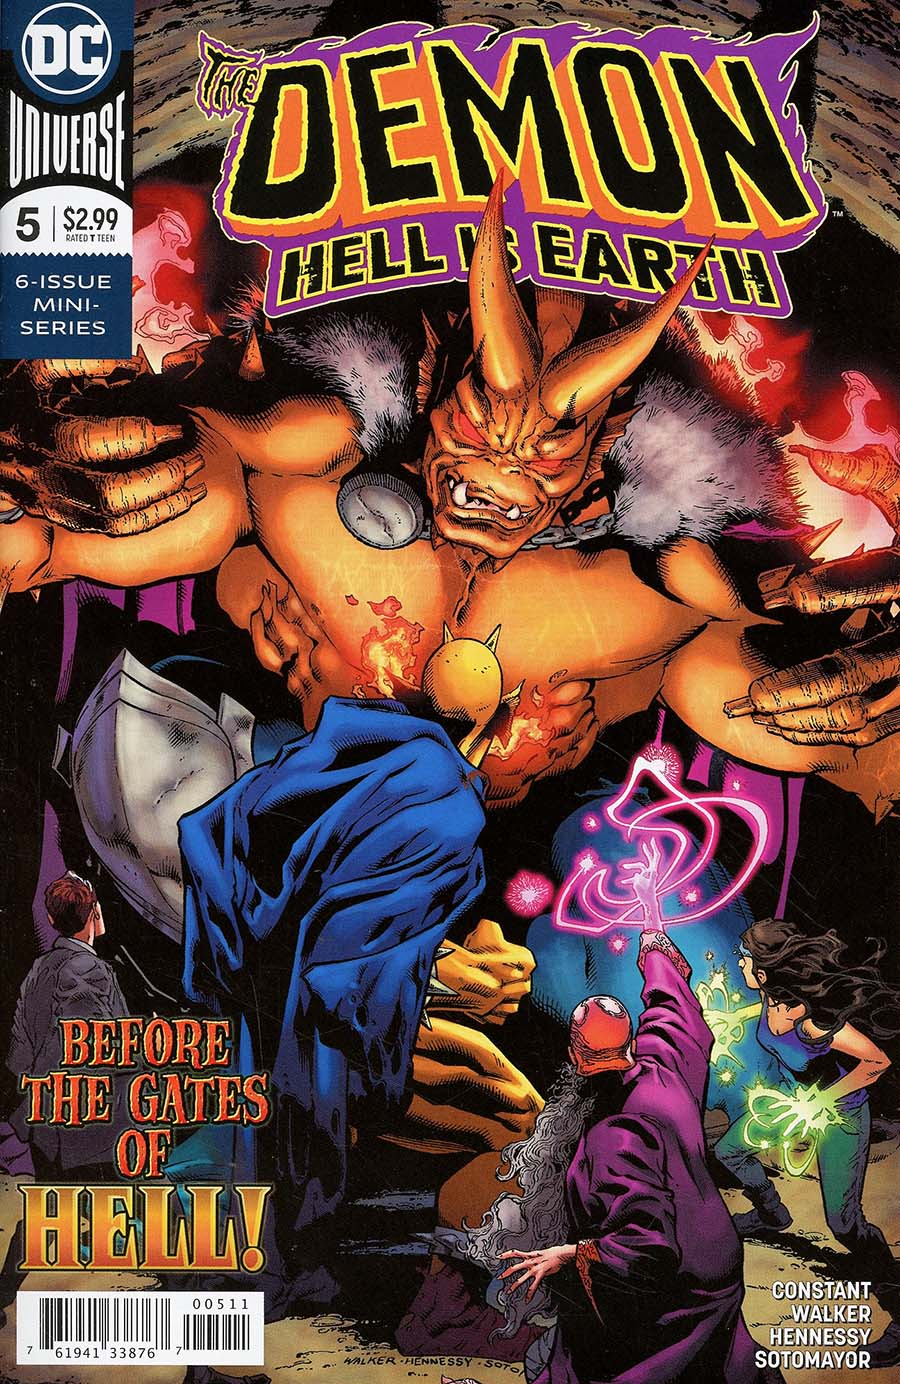 Demon Hell Is Earth #5